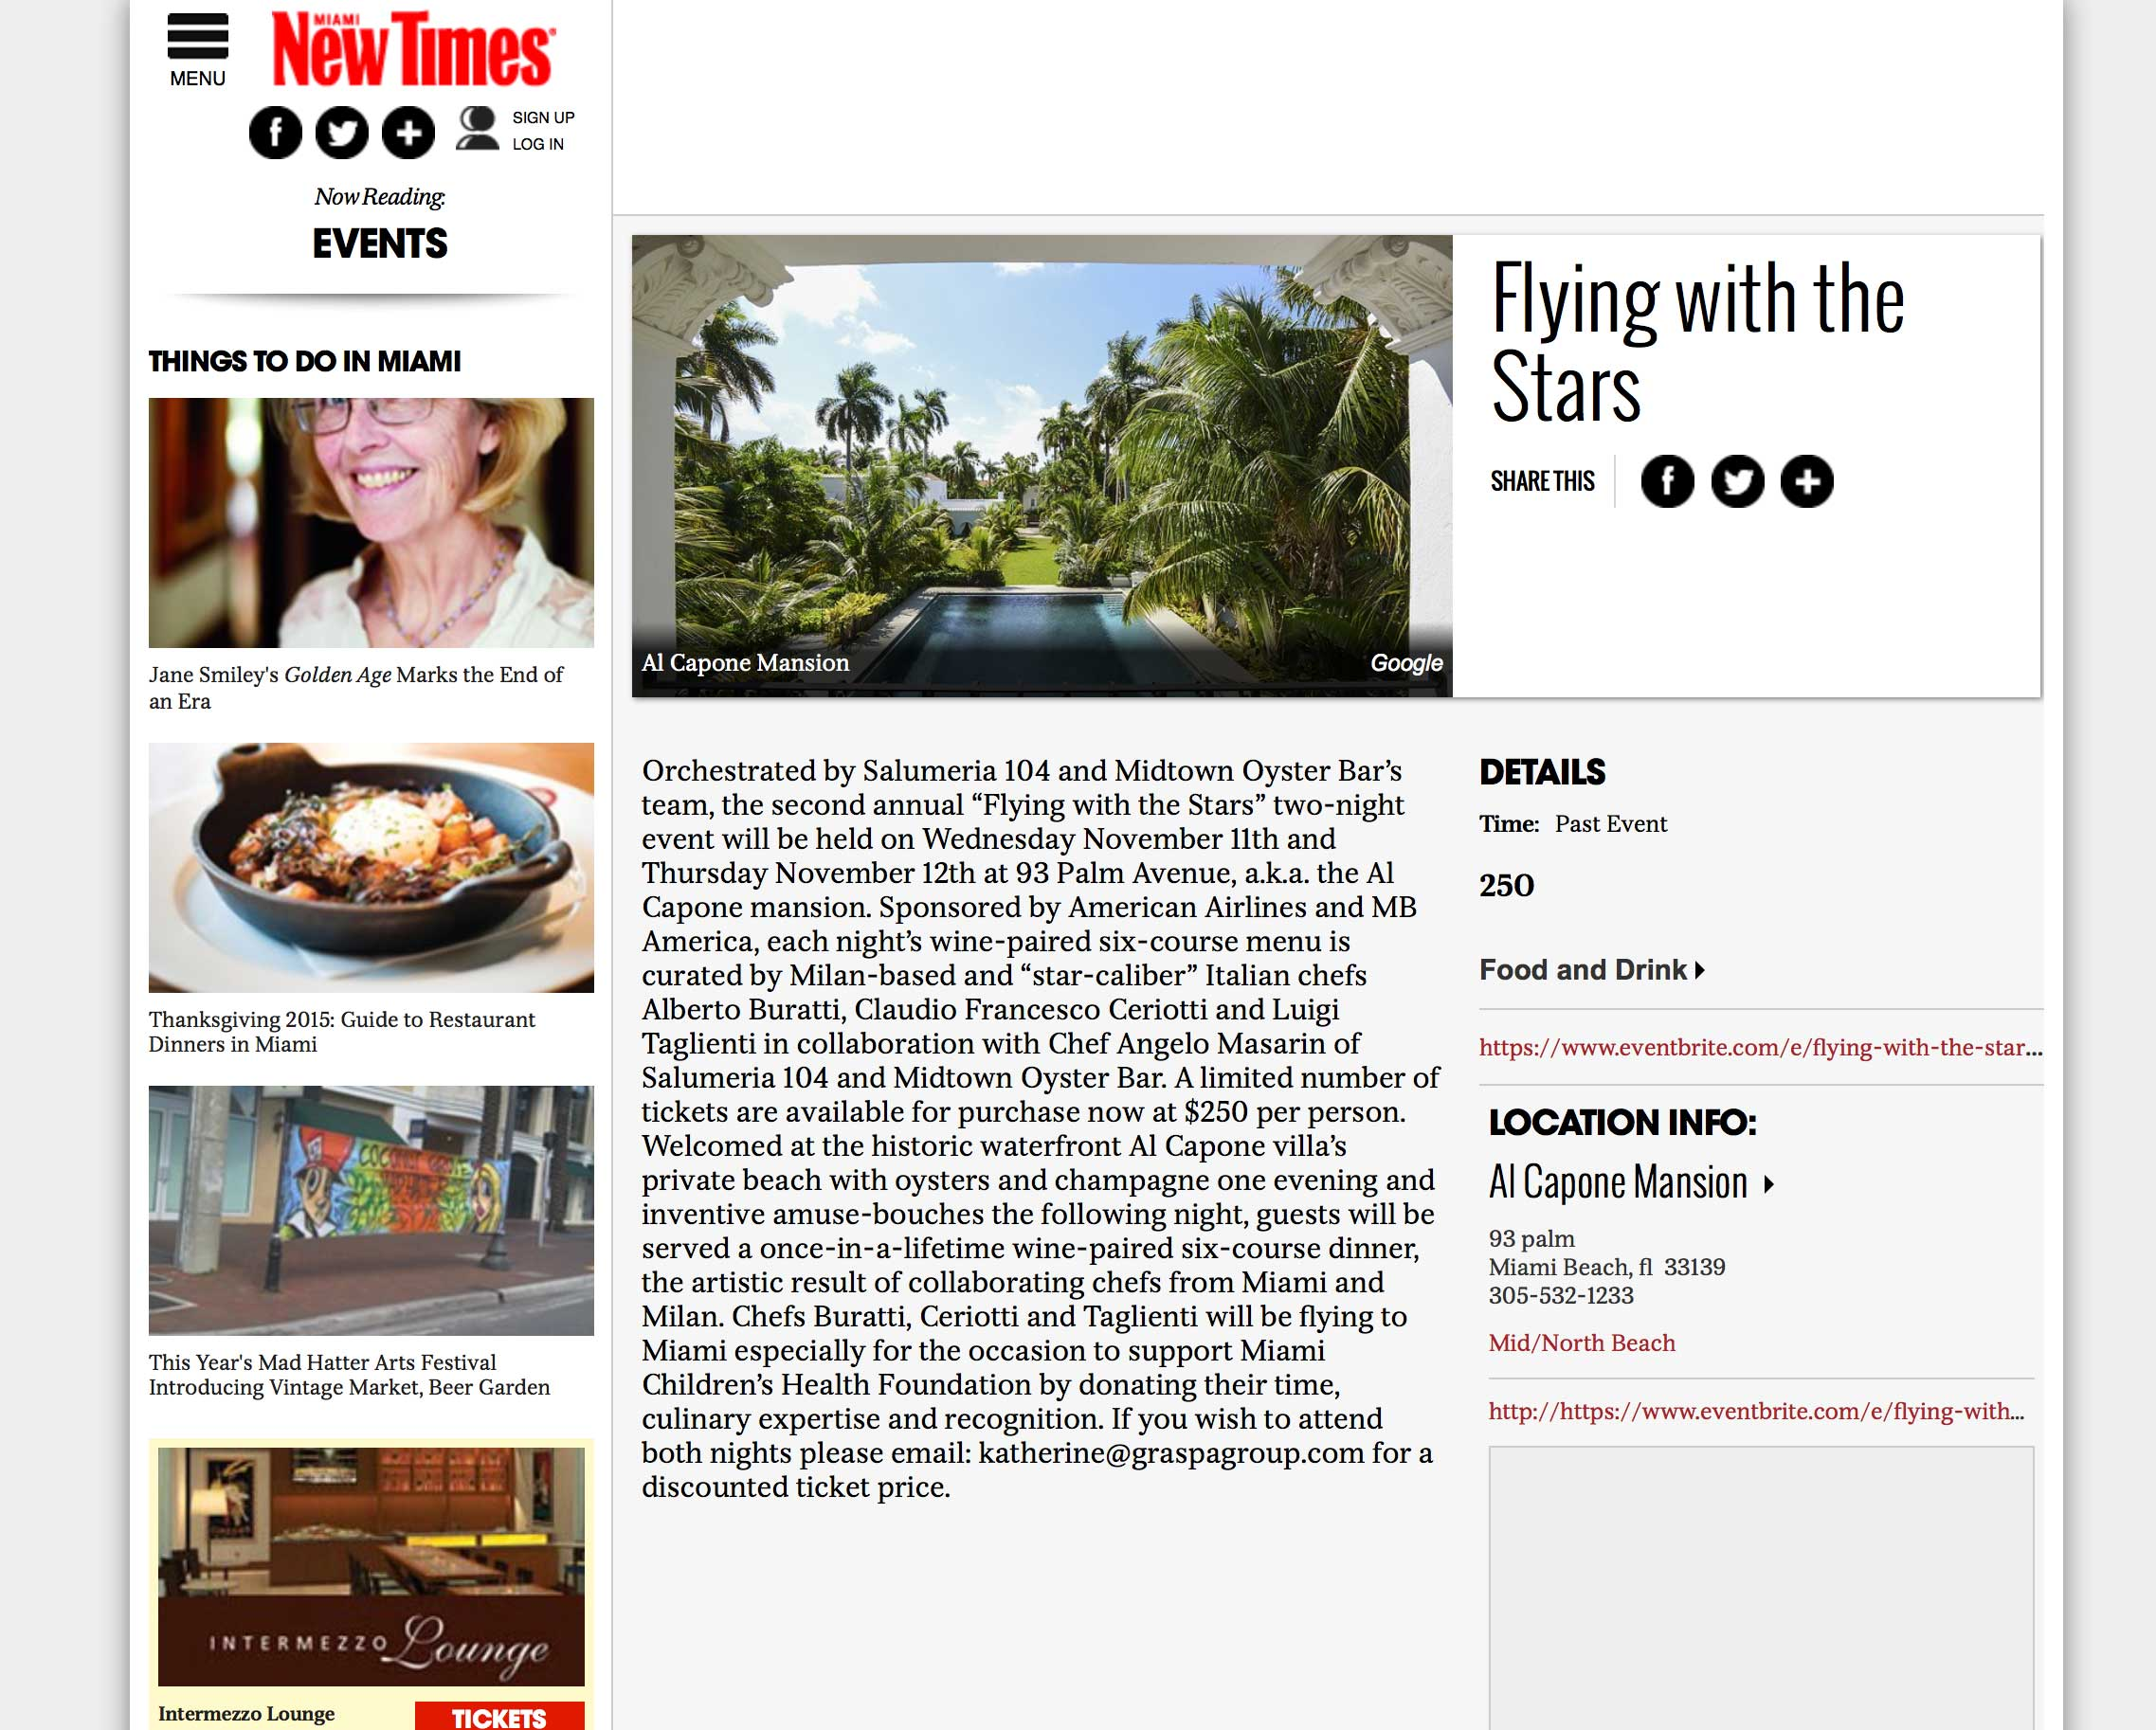 """<p><strong>Miami New Times</strong><a href=""""http://www.miaminewtimes.com/event/flying-with-the-stars-8005296"""" target=""""_blank"""">Read Article→</a></p>"""